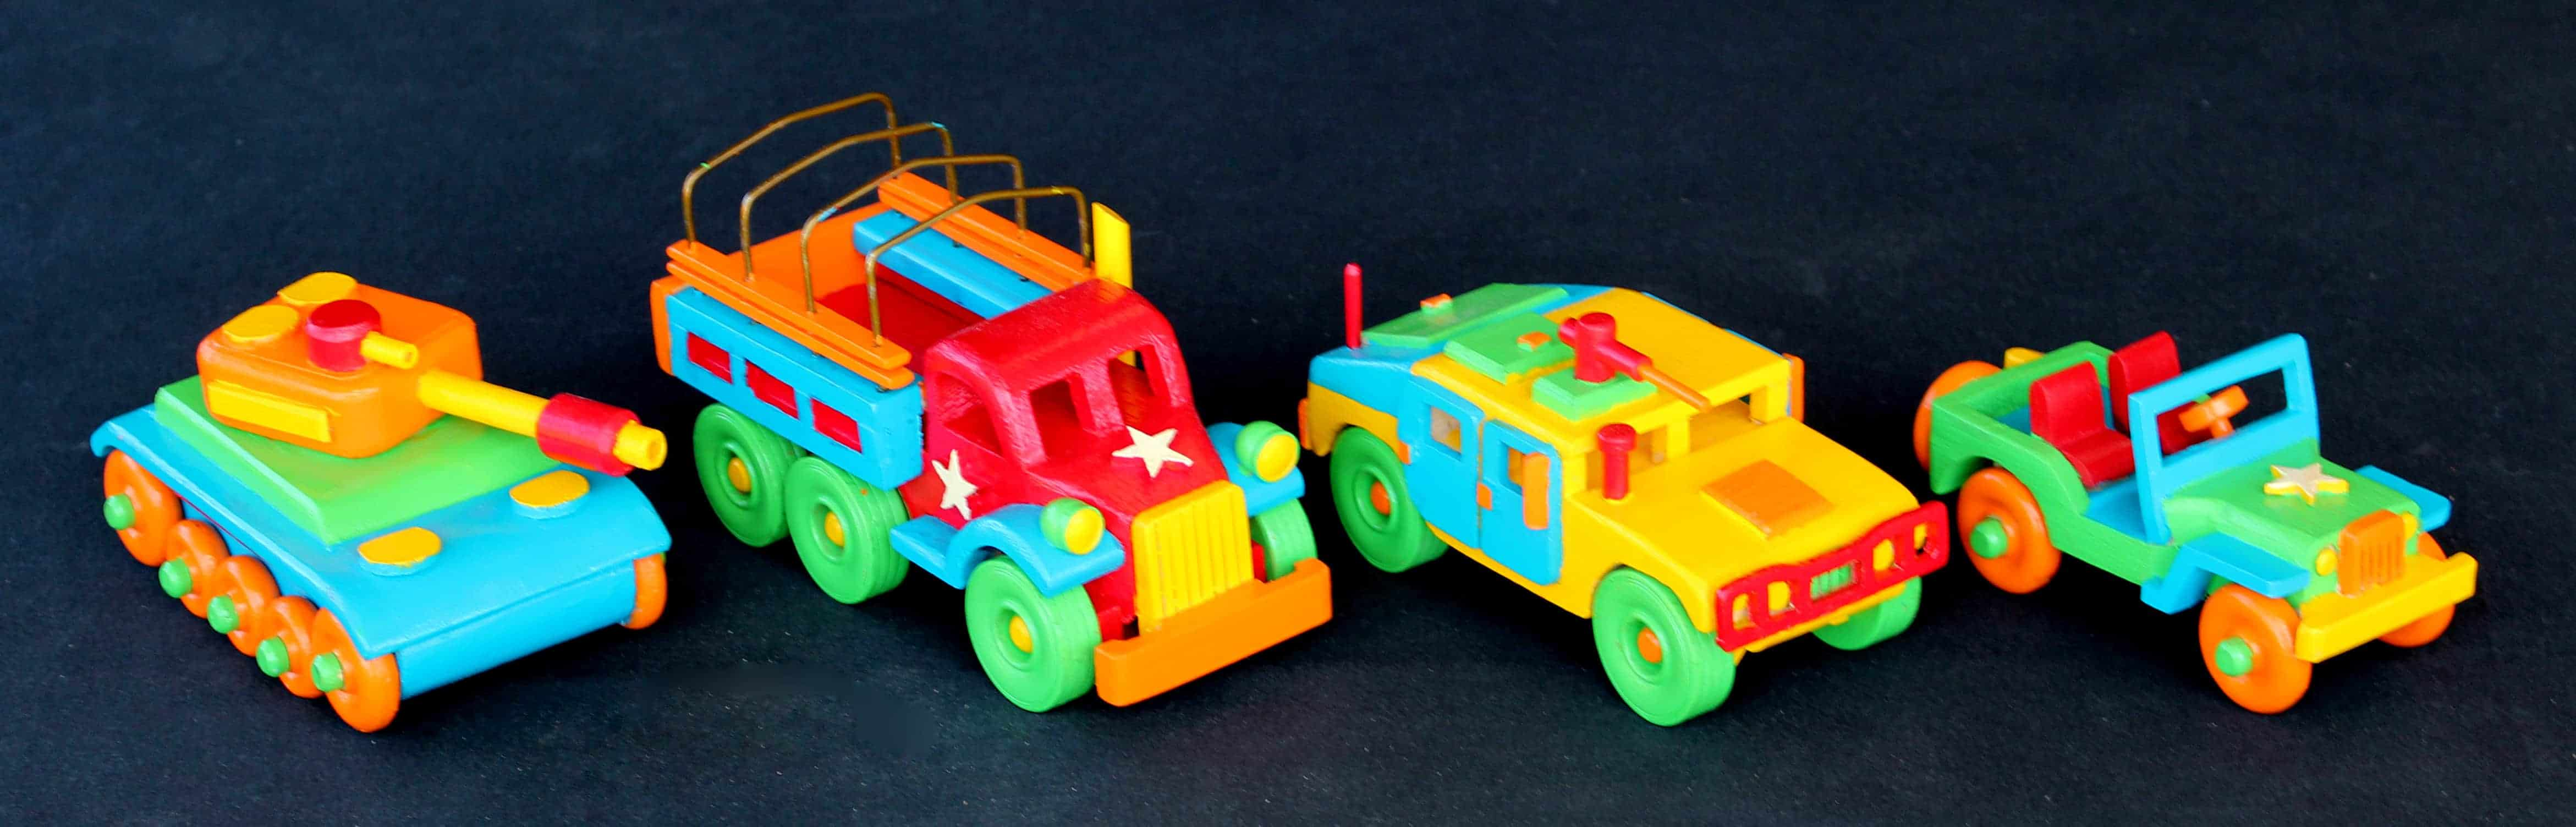 Plump'N'Tuff military vehicles woodworking plan package